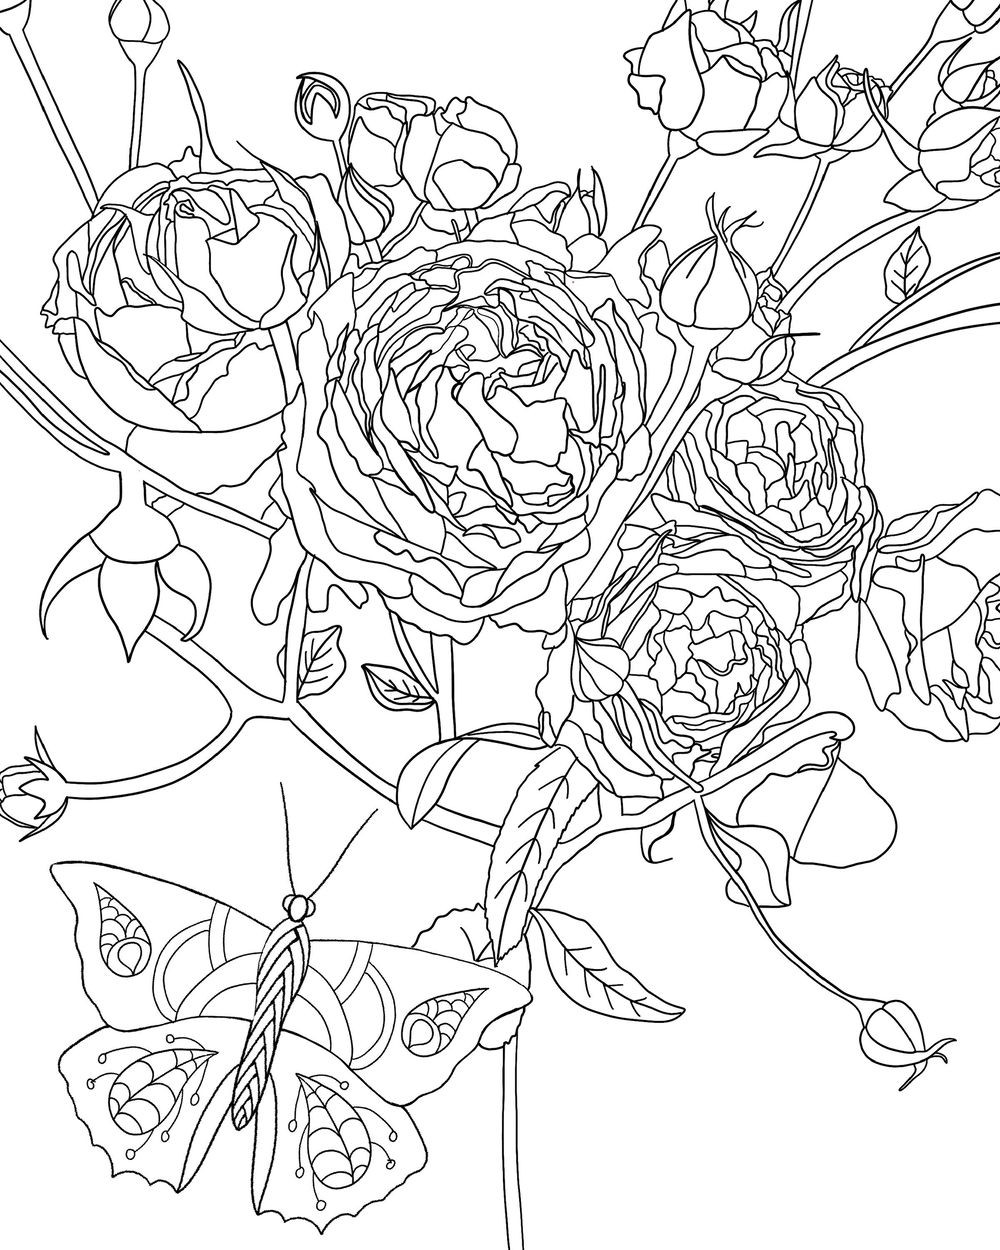 Botanical Coloring Book - image 2 - student project